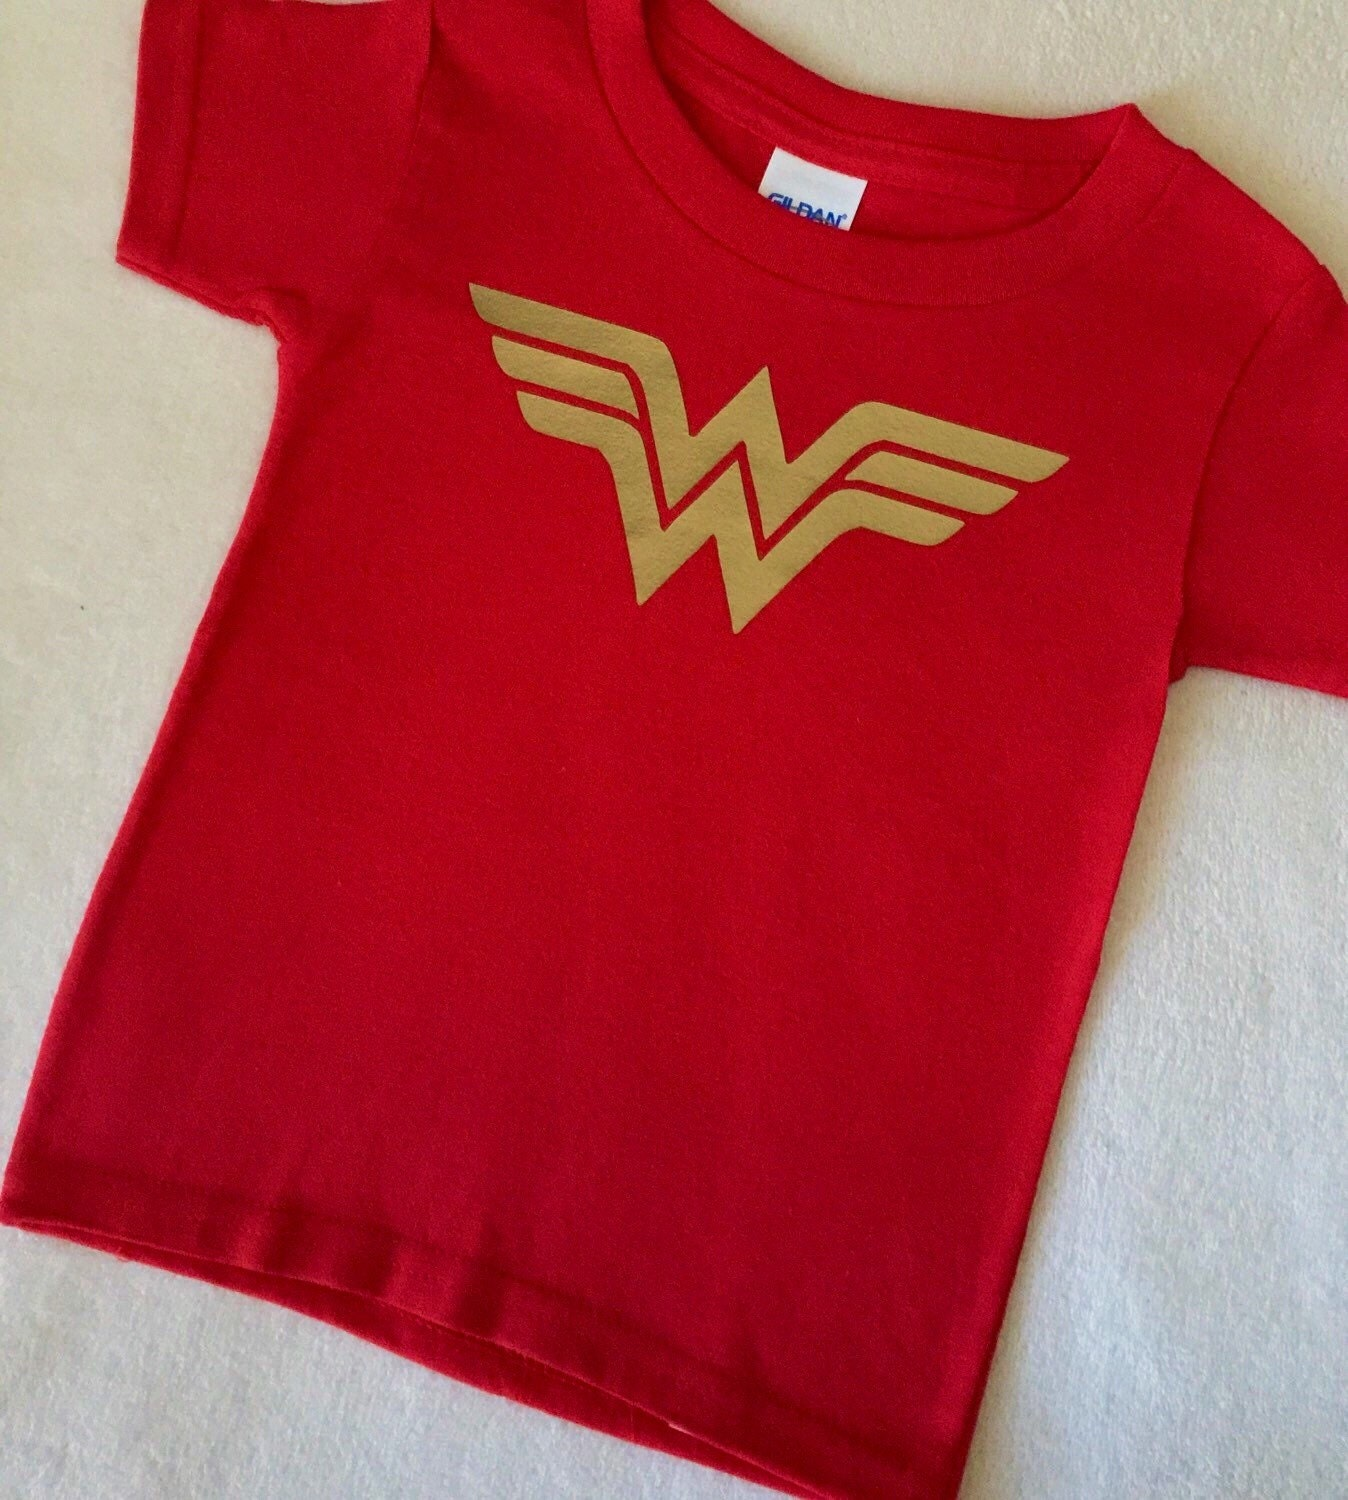 dade0a64403 Wonder Woman T Shirt Baby Toddler Girls Red and Gold 6 9 12 18